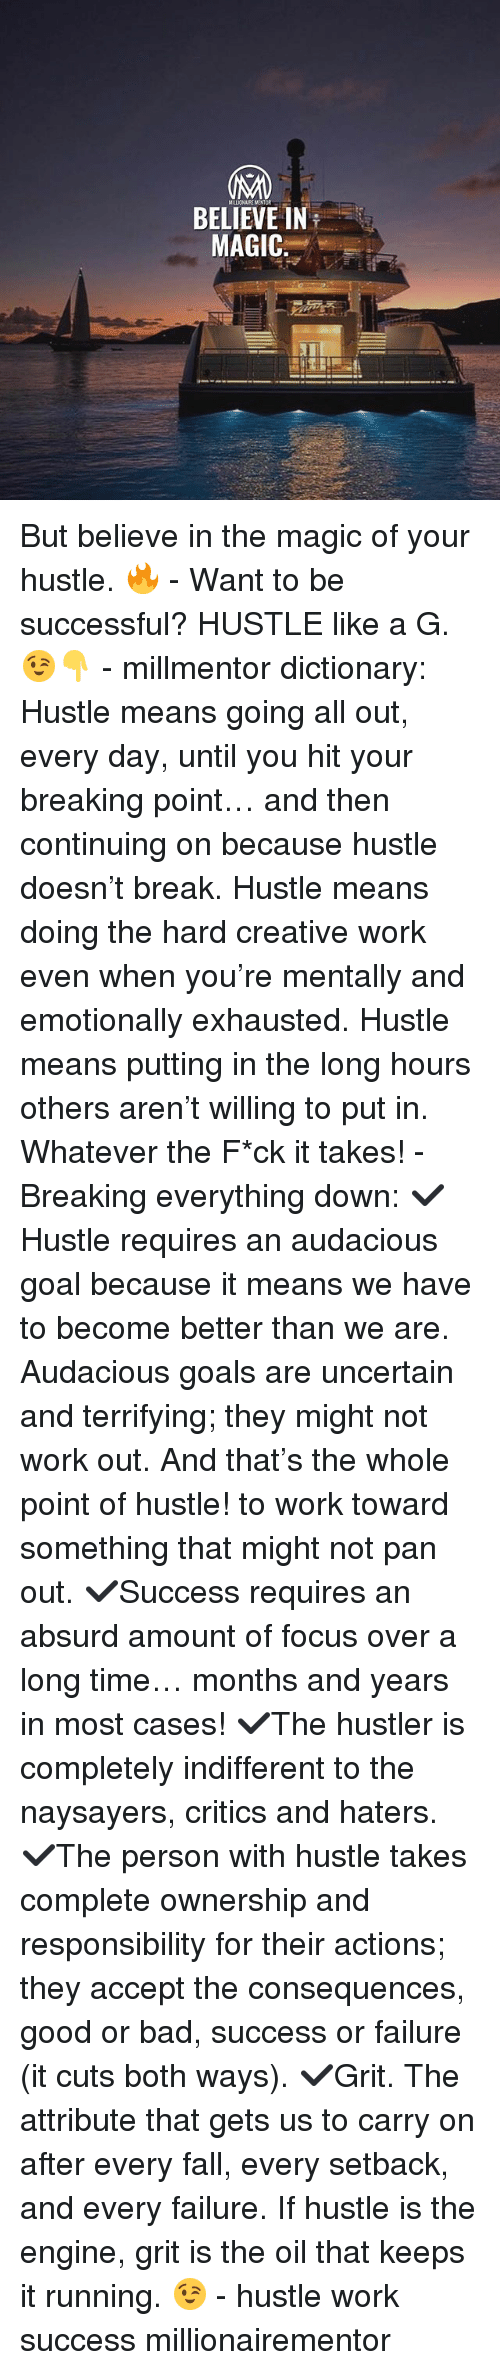 Bad, Fall, and Goals: BELIEVE IN  MAGIC: But believe in the magic of your hustle. 🔥 - Want to be successful? HUSTLE like a G. 😉👇 - millmentor dictionary: Hustle means going all out, every day, until you hit your breaking point… and then continuing on because hustle doesn't break. Hustle means doing the hard creative work even when you're mentally and emotionally exhausted. Hustle means putting in the long hours others aren't willing to put in. Whatever the F*ck it takes! - Breaking everything down: ✔️Hustle requires an audacious goal because it means we have to become better than we are. Audacious goals are uncertain and terrifying; they might not work out. And that's the whole point of hustle! to work toward something that might not pan out. ✔️Success requires an absurd amount of focus over a long time… months and years in most cases! ✔️The hustler is completely indifferent to the naysayers, critics and haters. ✔️The person with hustle takes complete ownership and responsibility for their actions; they accept the consequences, good or bad, success or failure (it cuts both ways). ✔️Grit. The attribute that gets us to carry on after every fall, every setback, and every failure. If hustle is the engine, grit is the oil that keeps it running. 😉 - hustle work success millionairementor